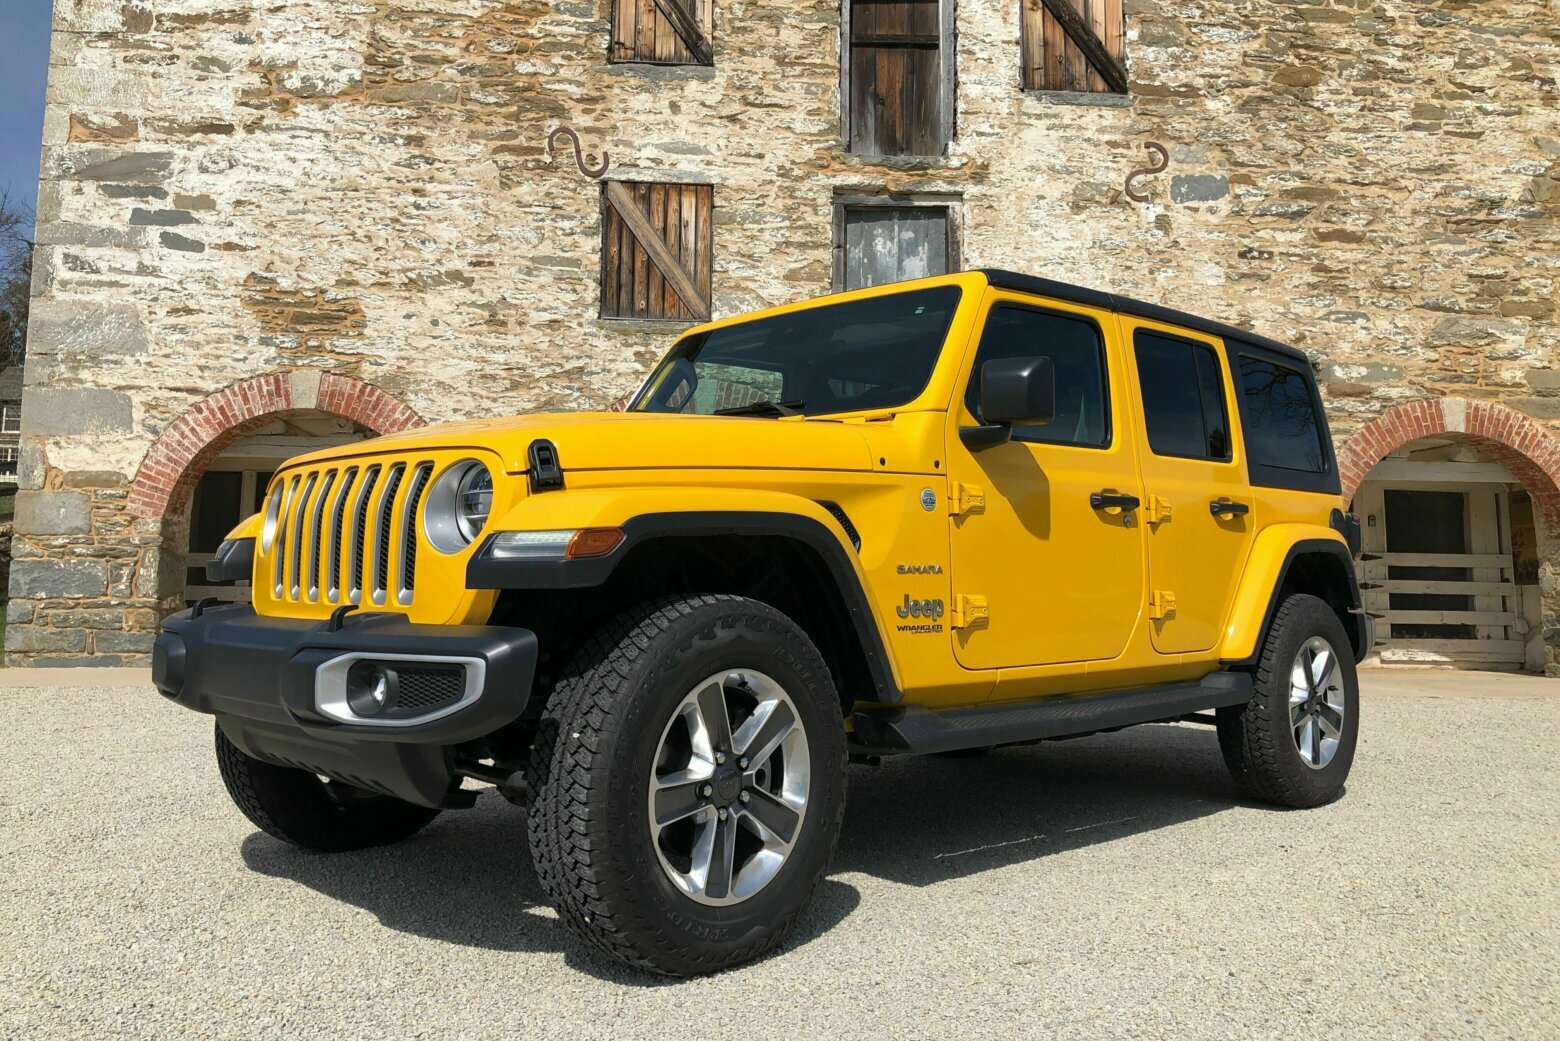 Vehicles that hold their value in the DC area: Wrangler is No. 1 | WTOP